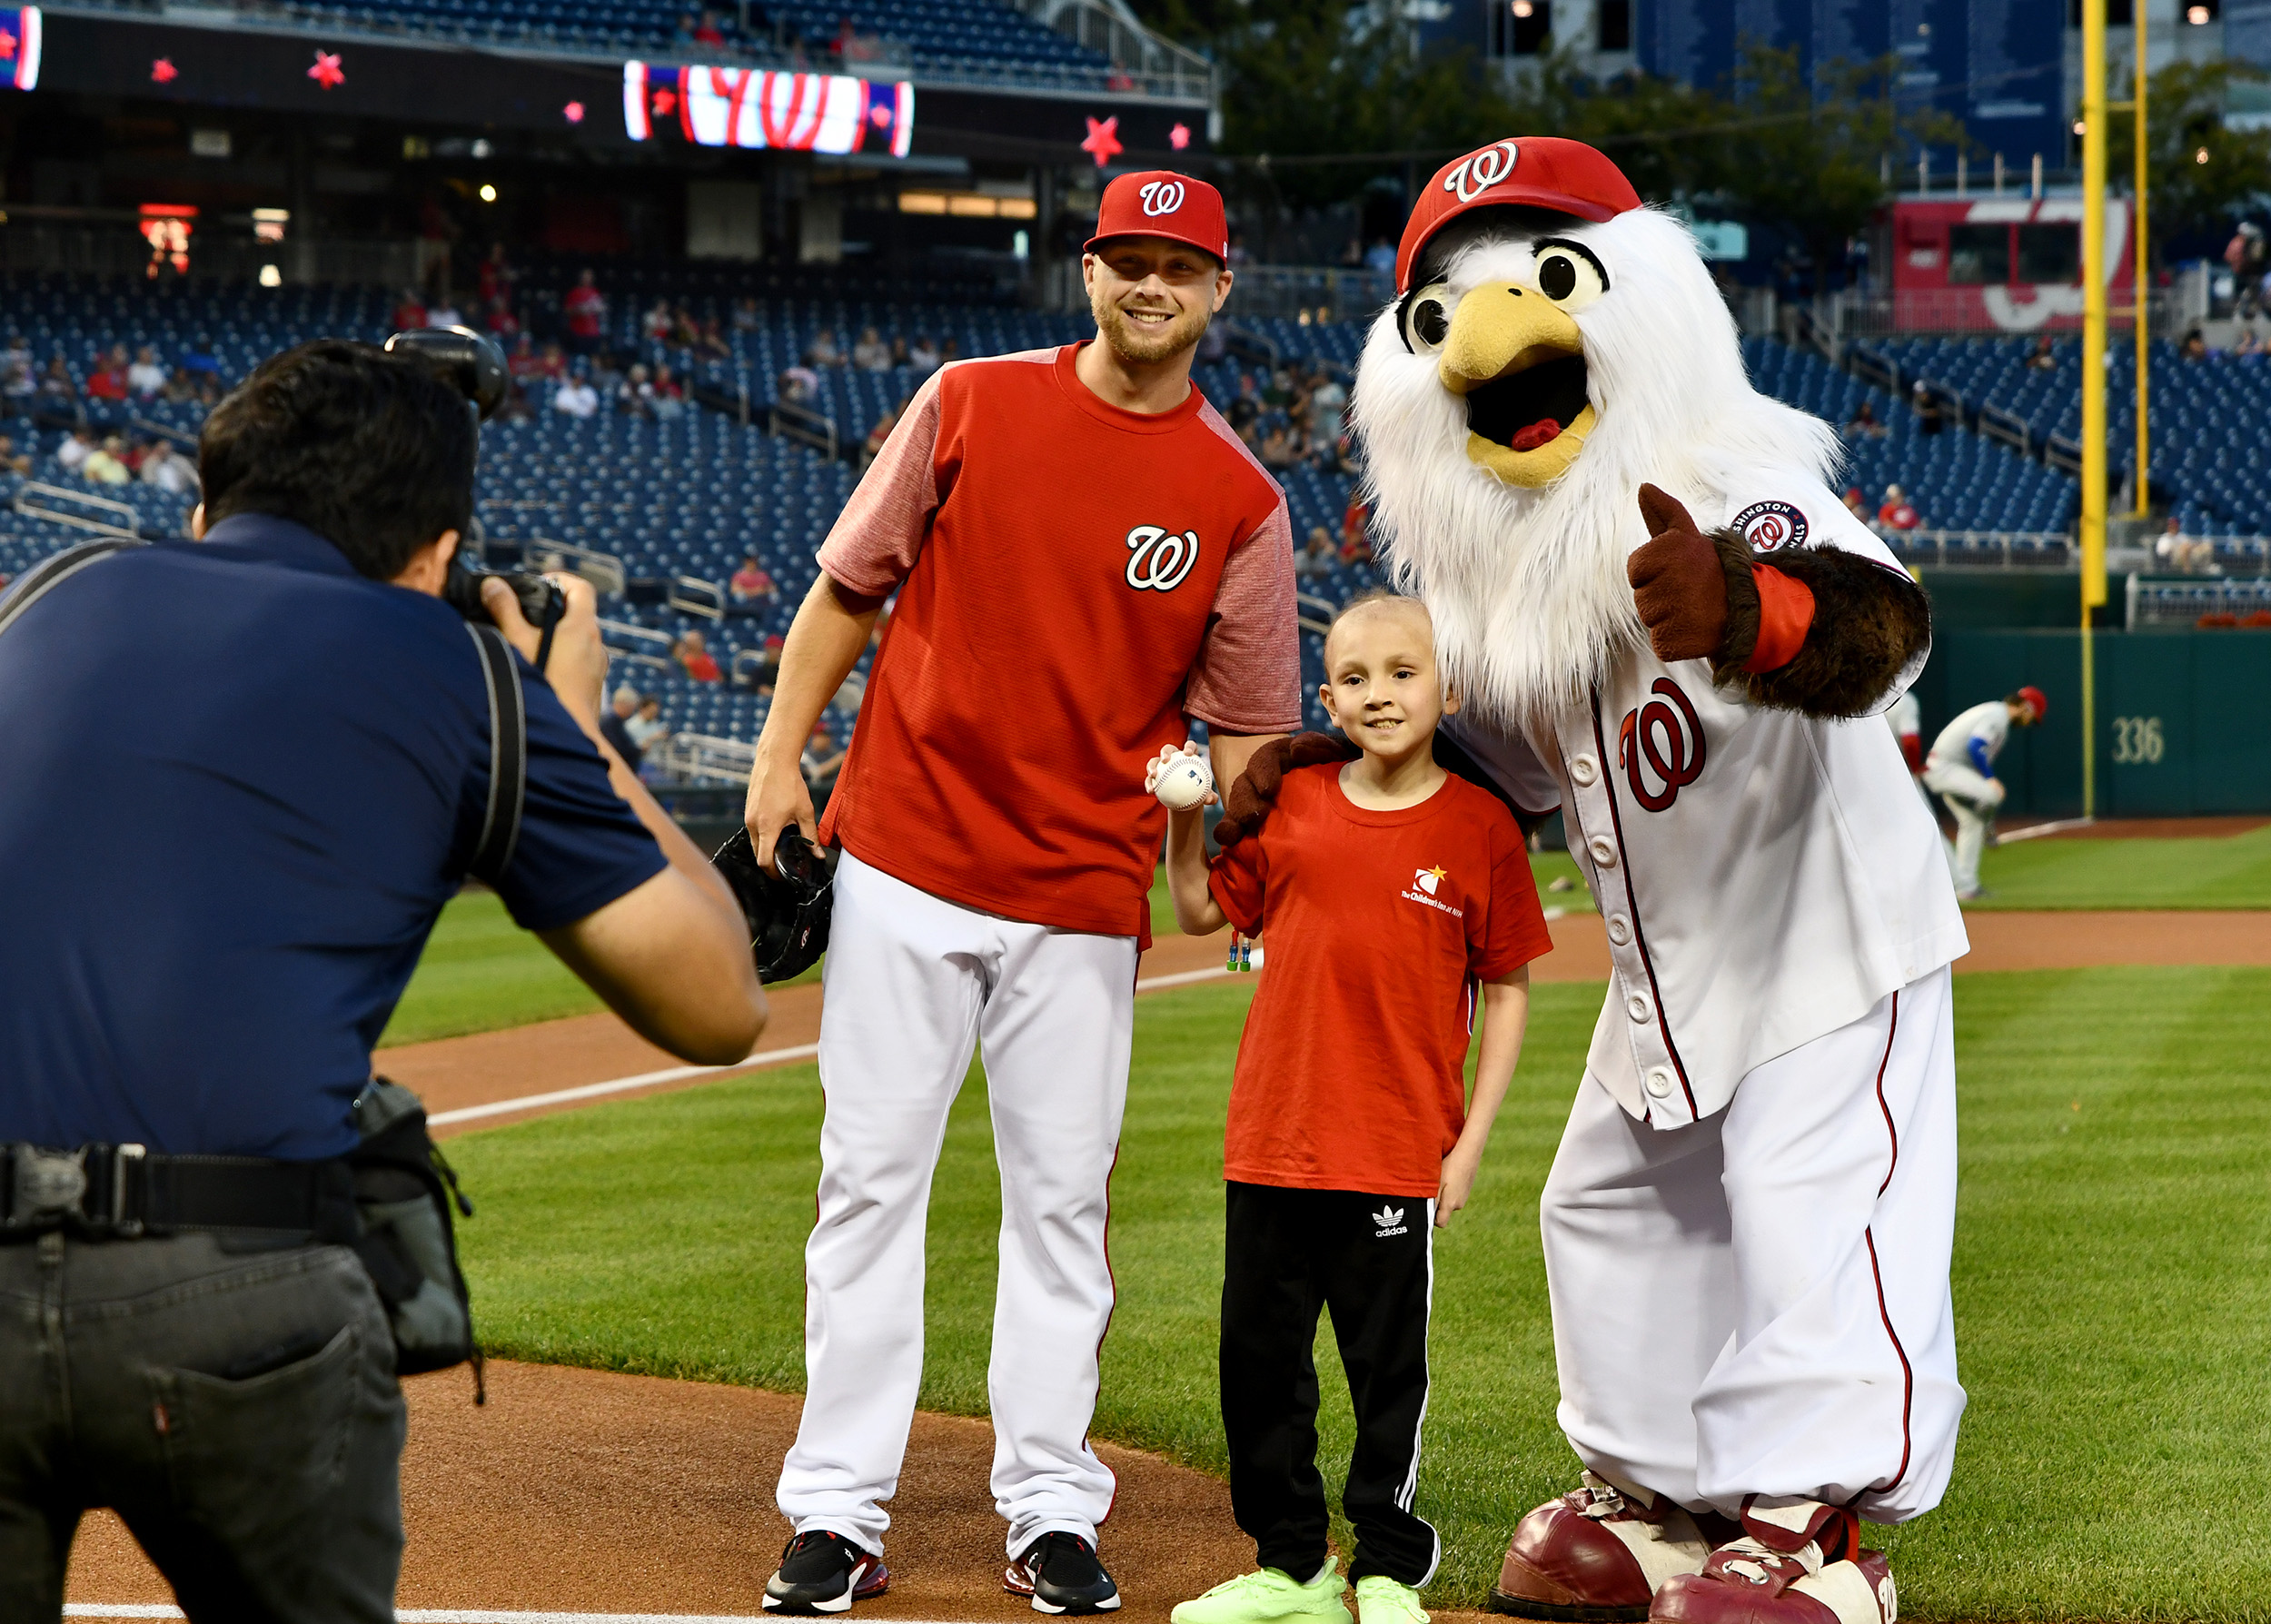 Inn resident Eduardo at Nationals Park with a player and their mascot, Screech